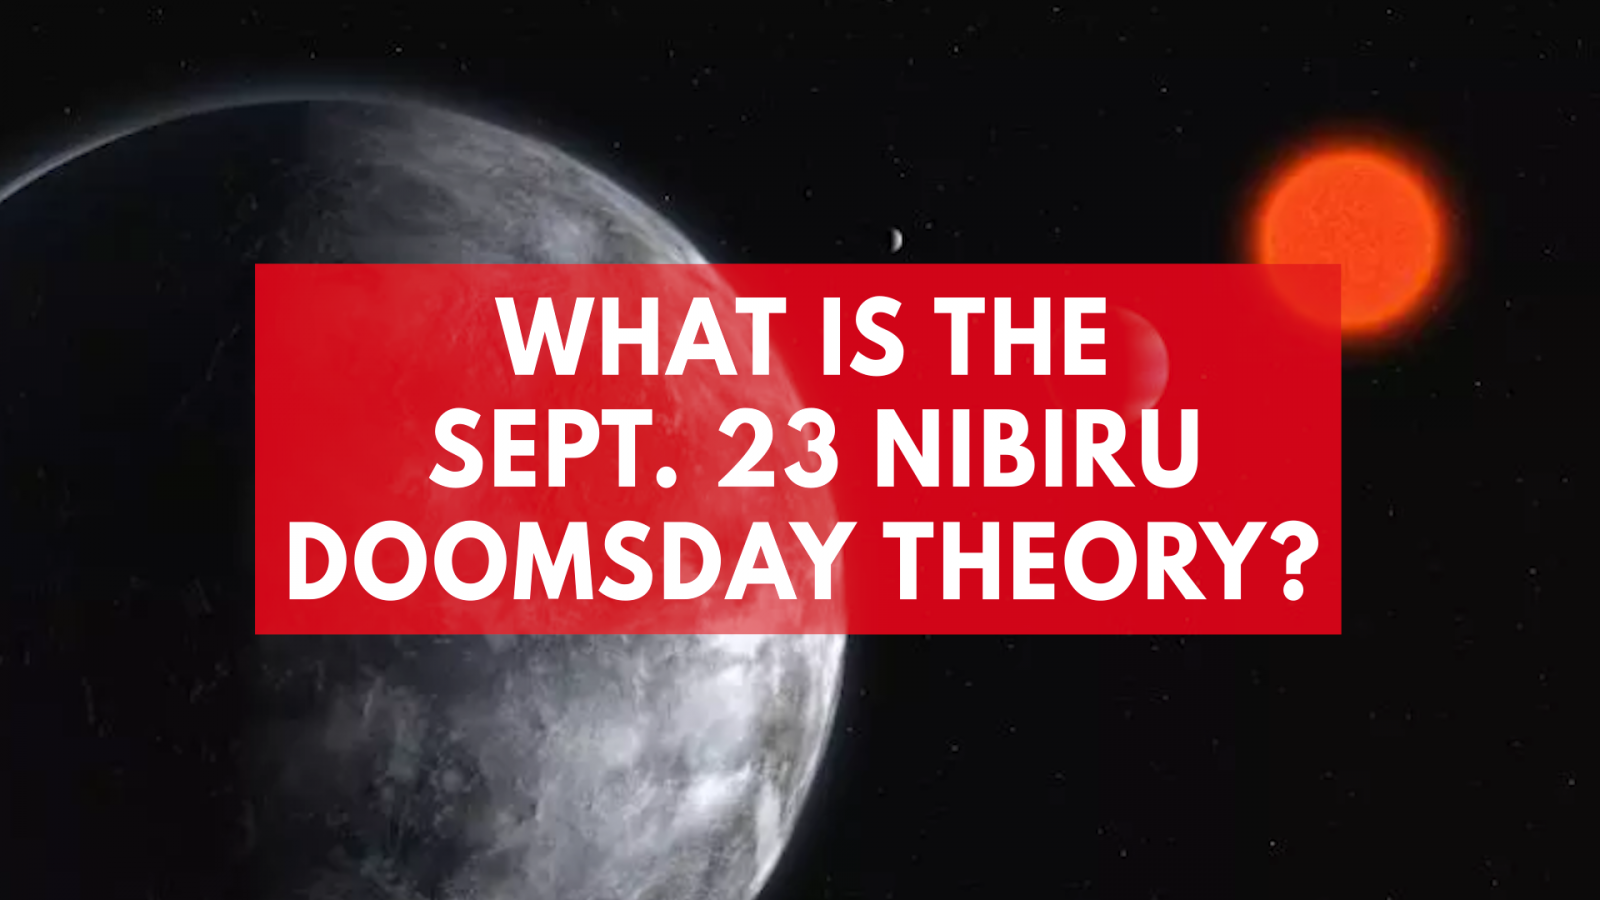 what-is-the-the-sept-23-nibiru-doomsday-theory